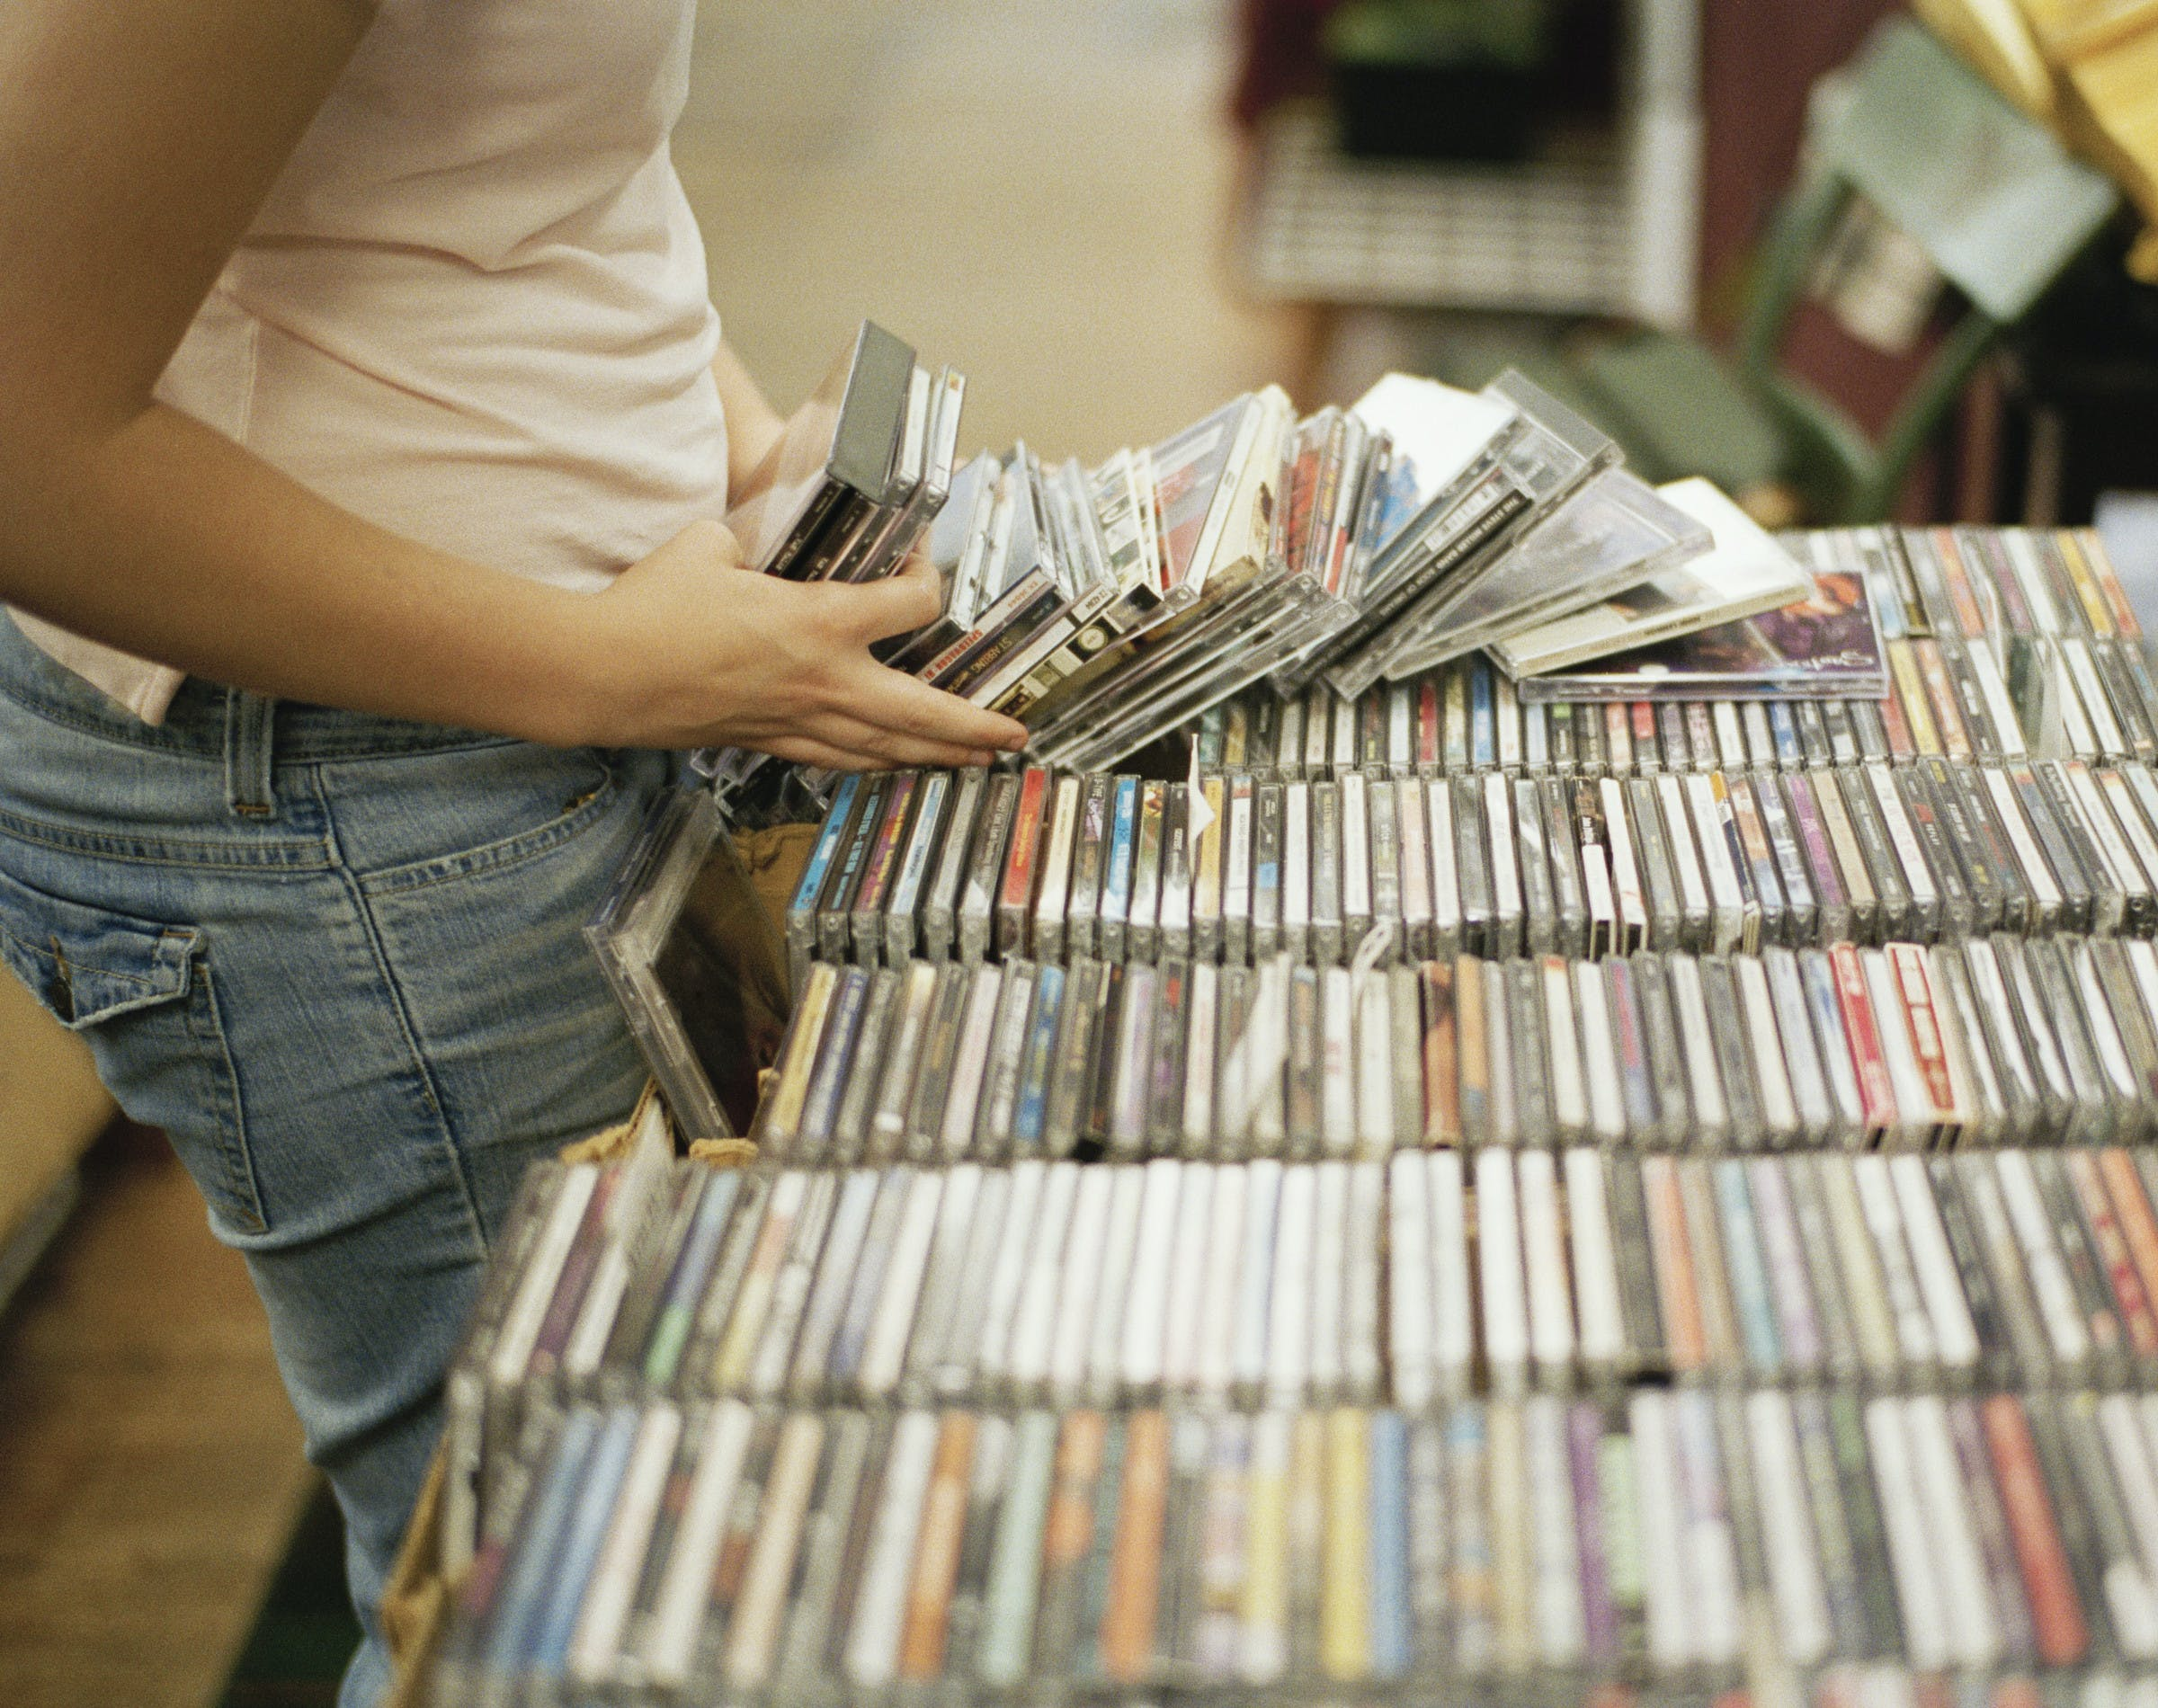 Amendments to Taiwan's Copyright Act; Playing CDs in Public might be Charged